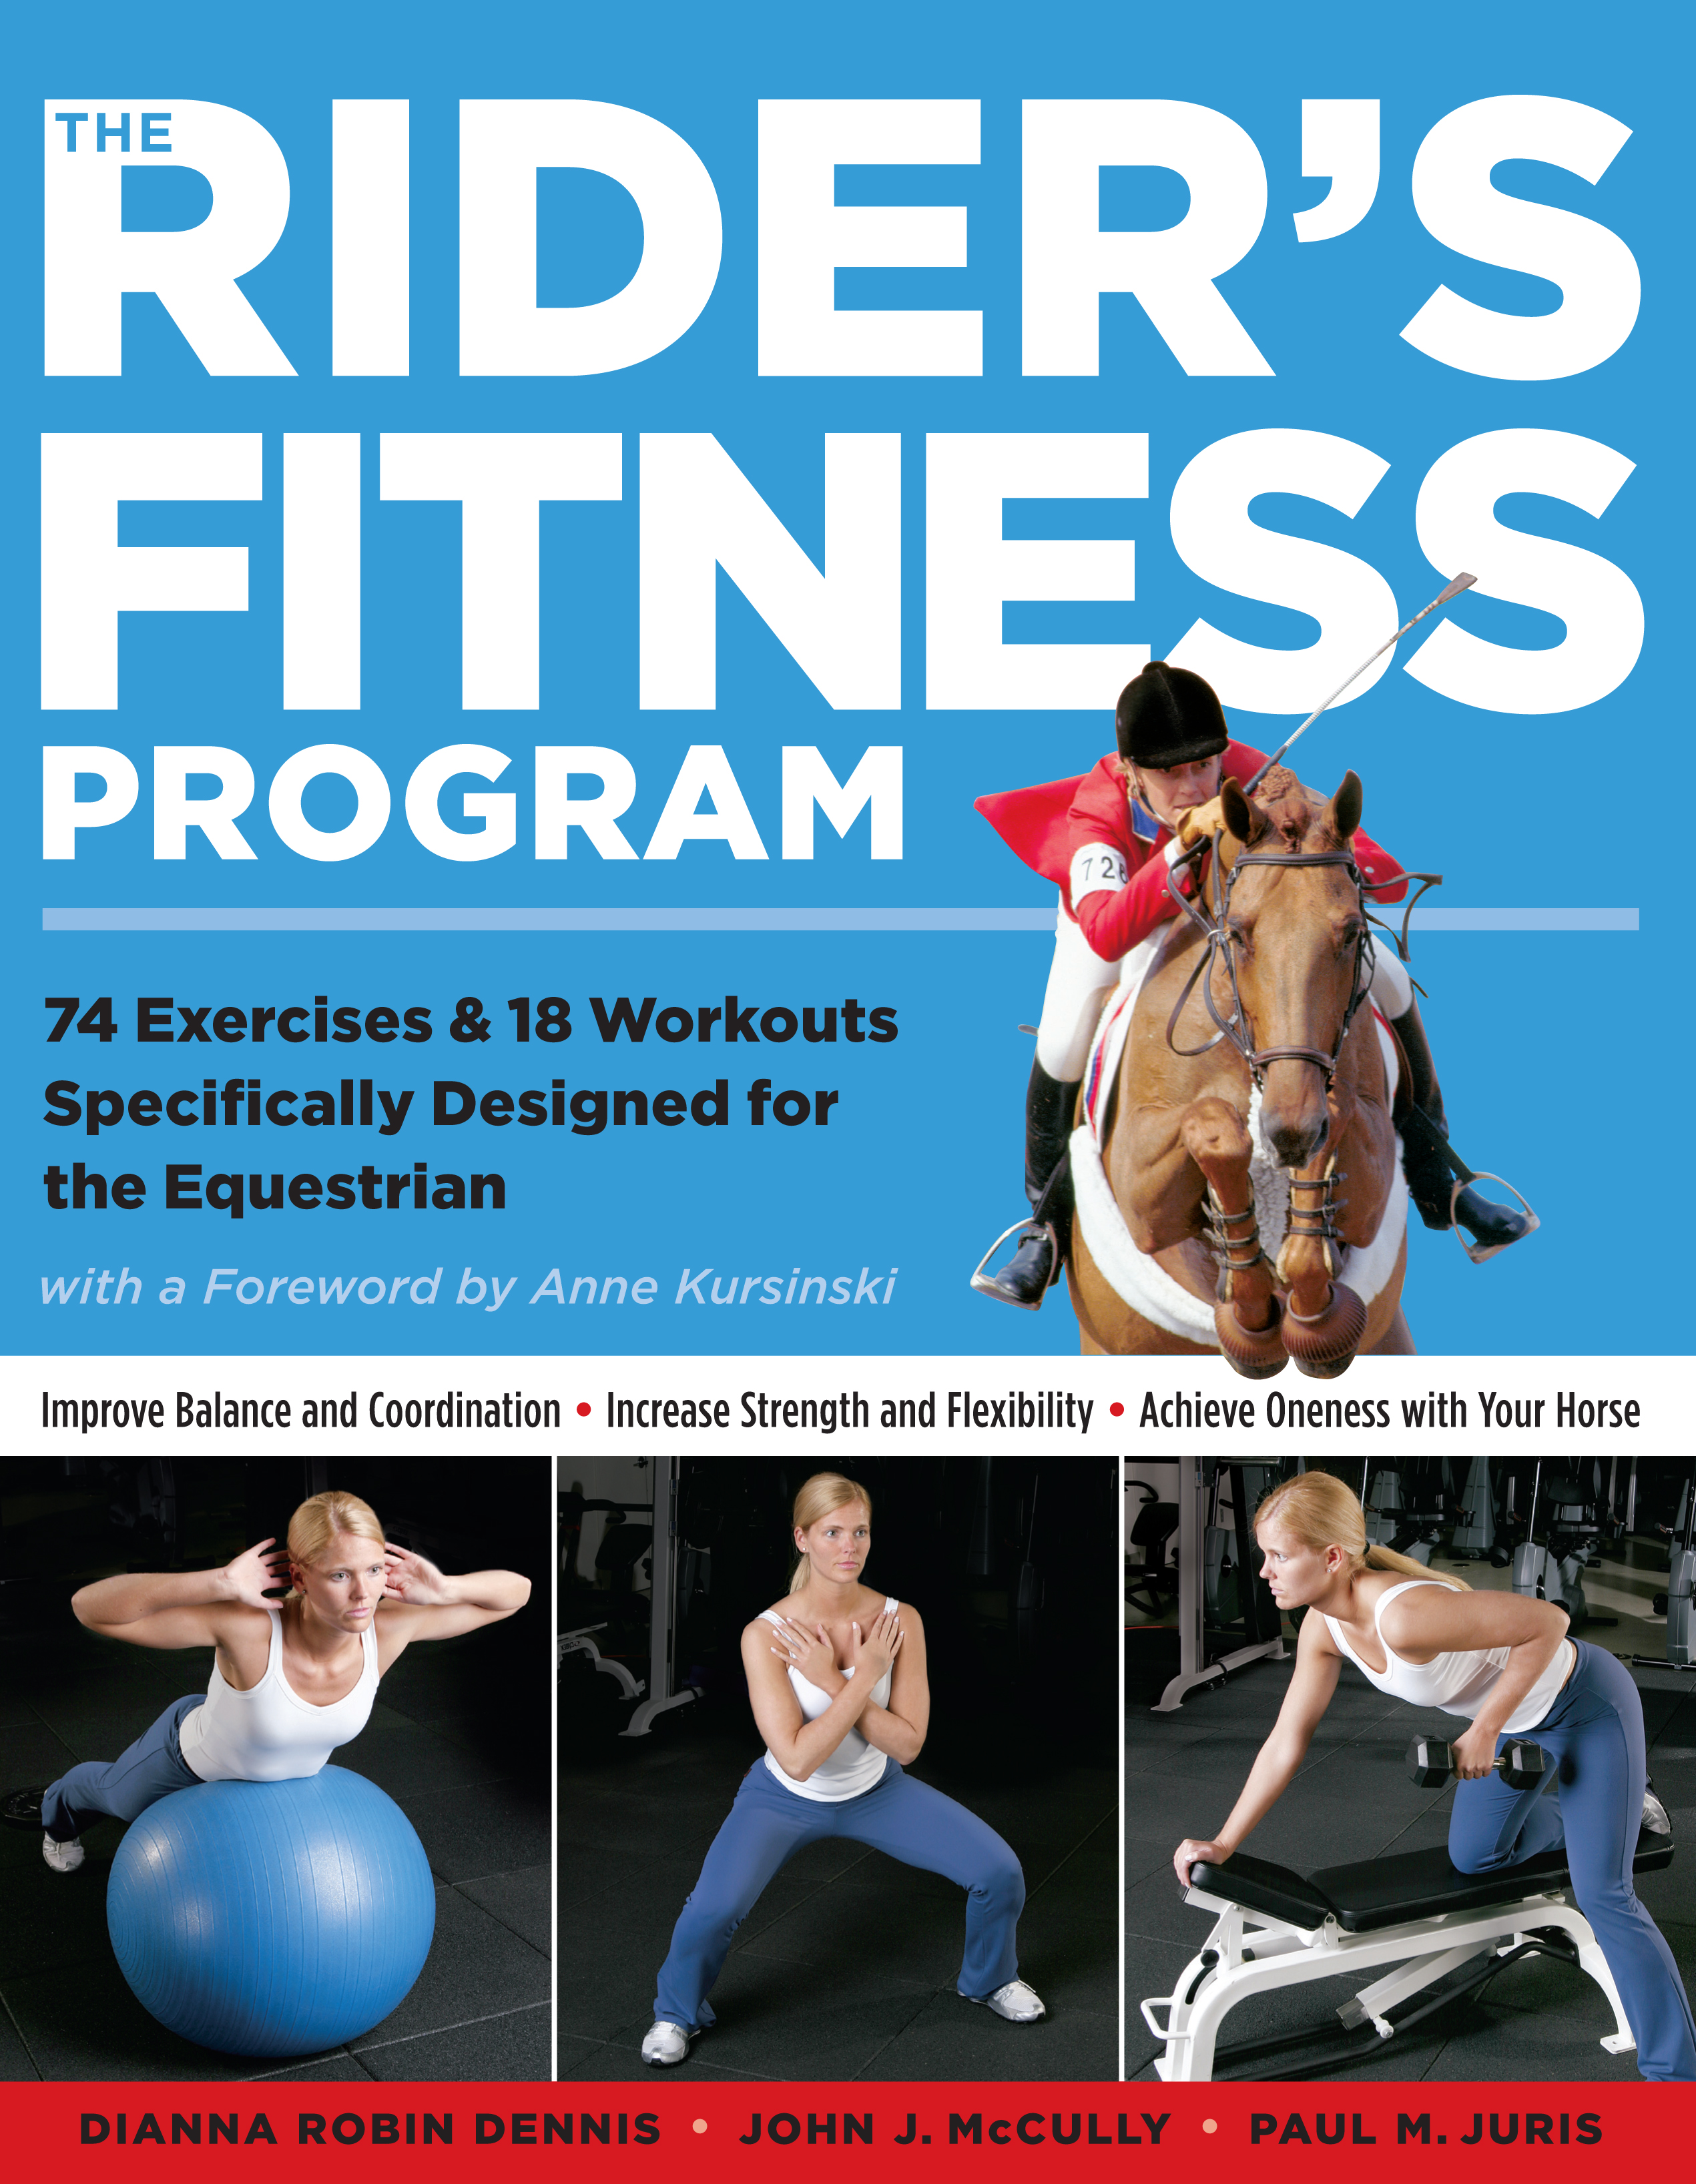 The Rider's Fitness Program 74 Exercises & 18 Workouts Specifically Designed for the Equestrian - Dianna Robin Dennis